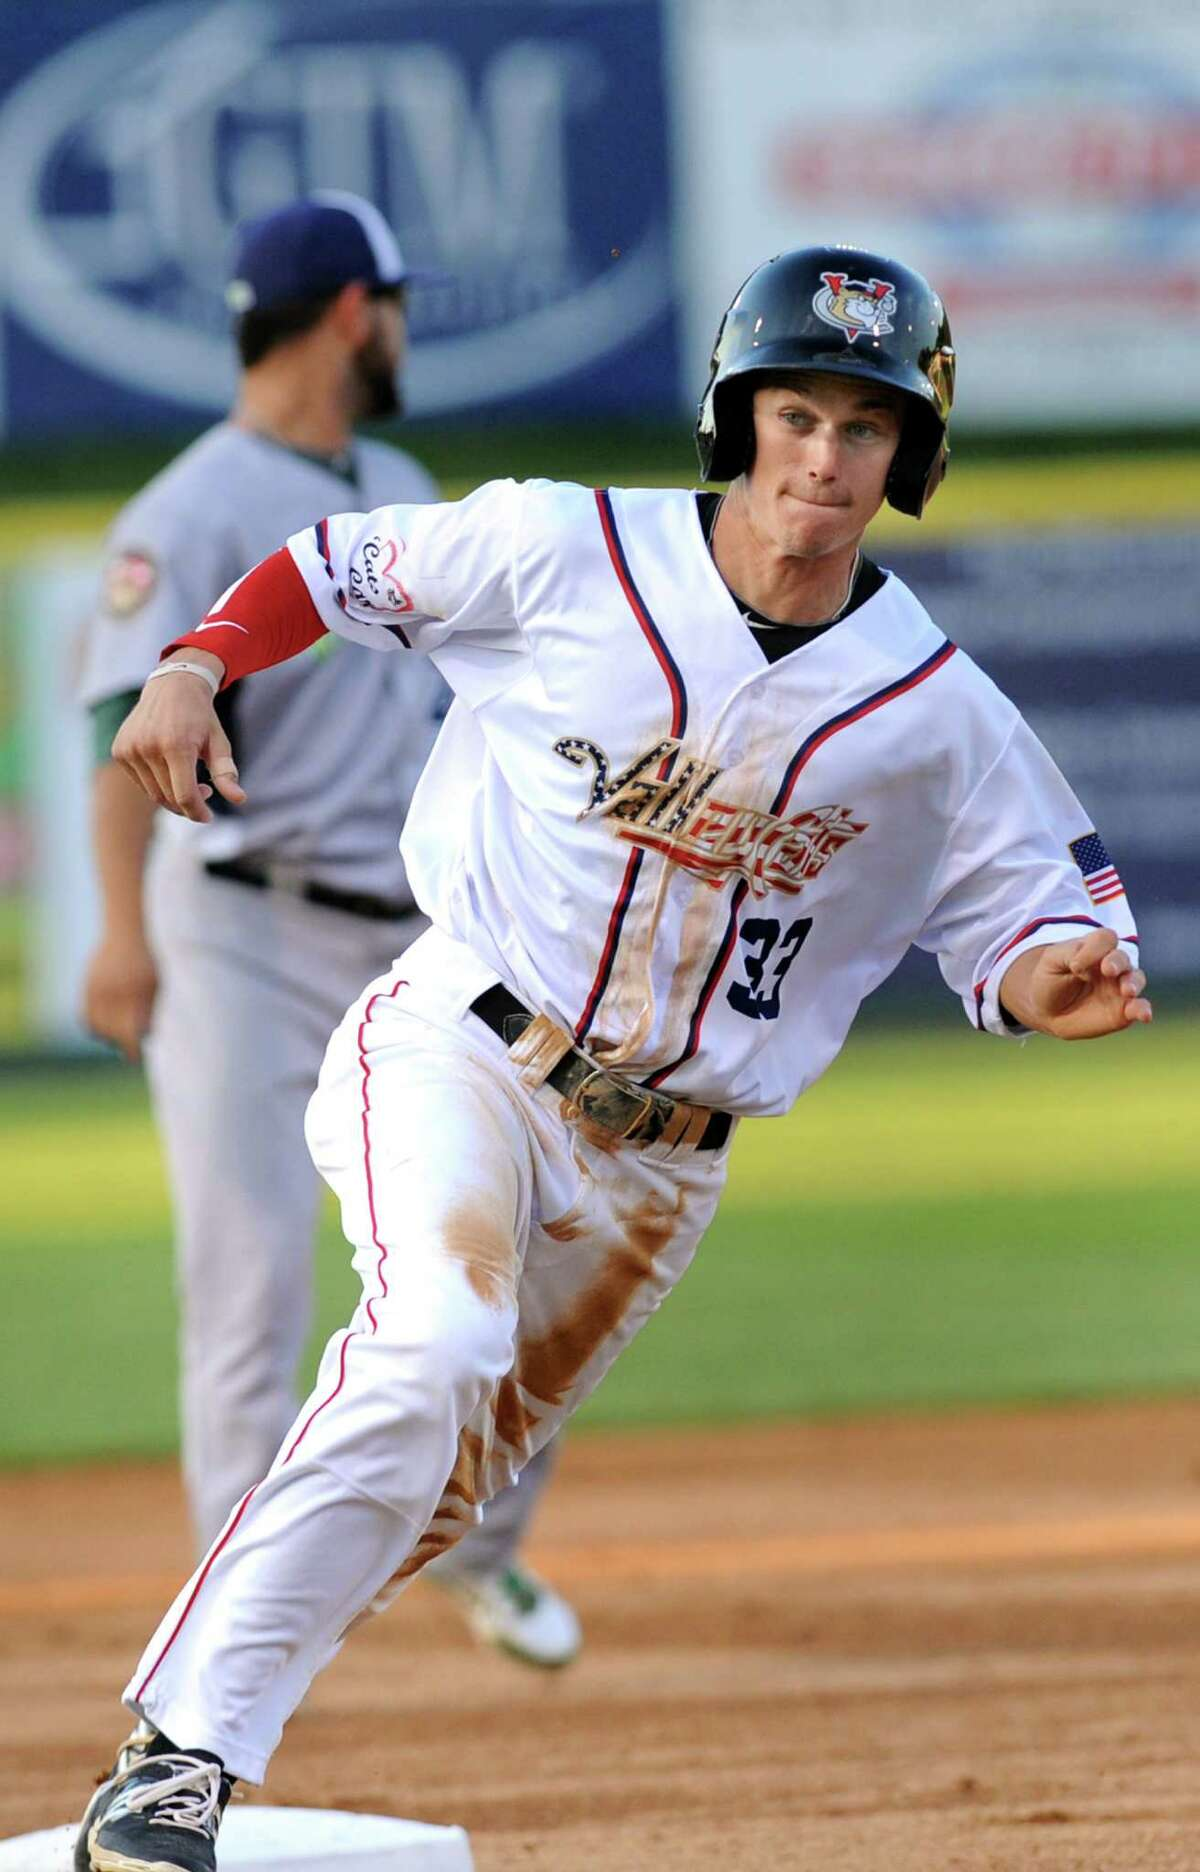 ValleyCats Johnny Sewald rounds third and heads for home during their baseball game against the Lake Monsters on Thursday, July 2, 2015, at the Joe Bruno Stadium in Troy, N.Y. (Cindy Schultz / Times Union)